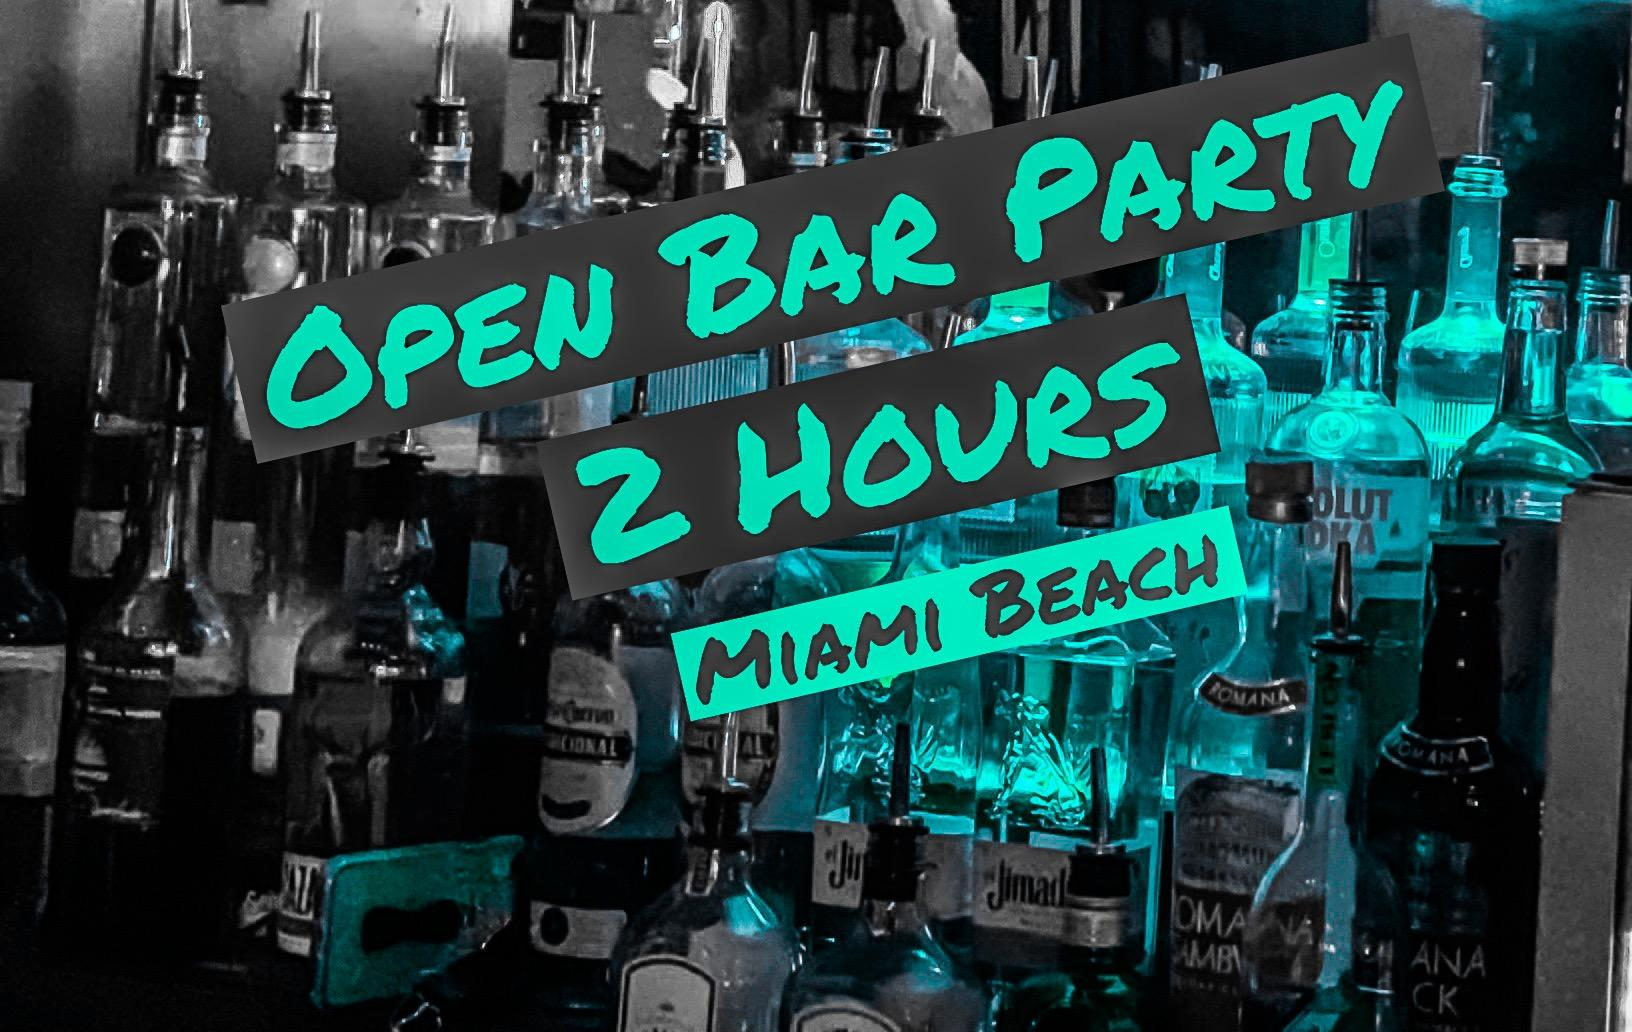 OPEN BAR 2 HRS - Unlimited Drinks in Miami Beach @ Señor Frog's, Mon 2/17 10:00pm